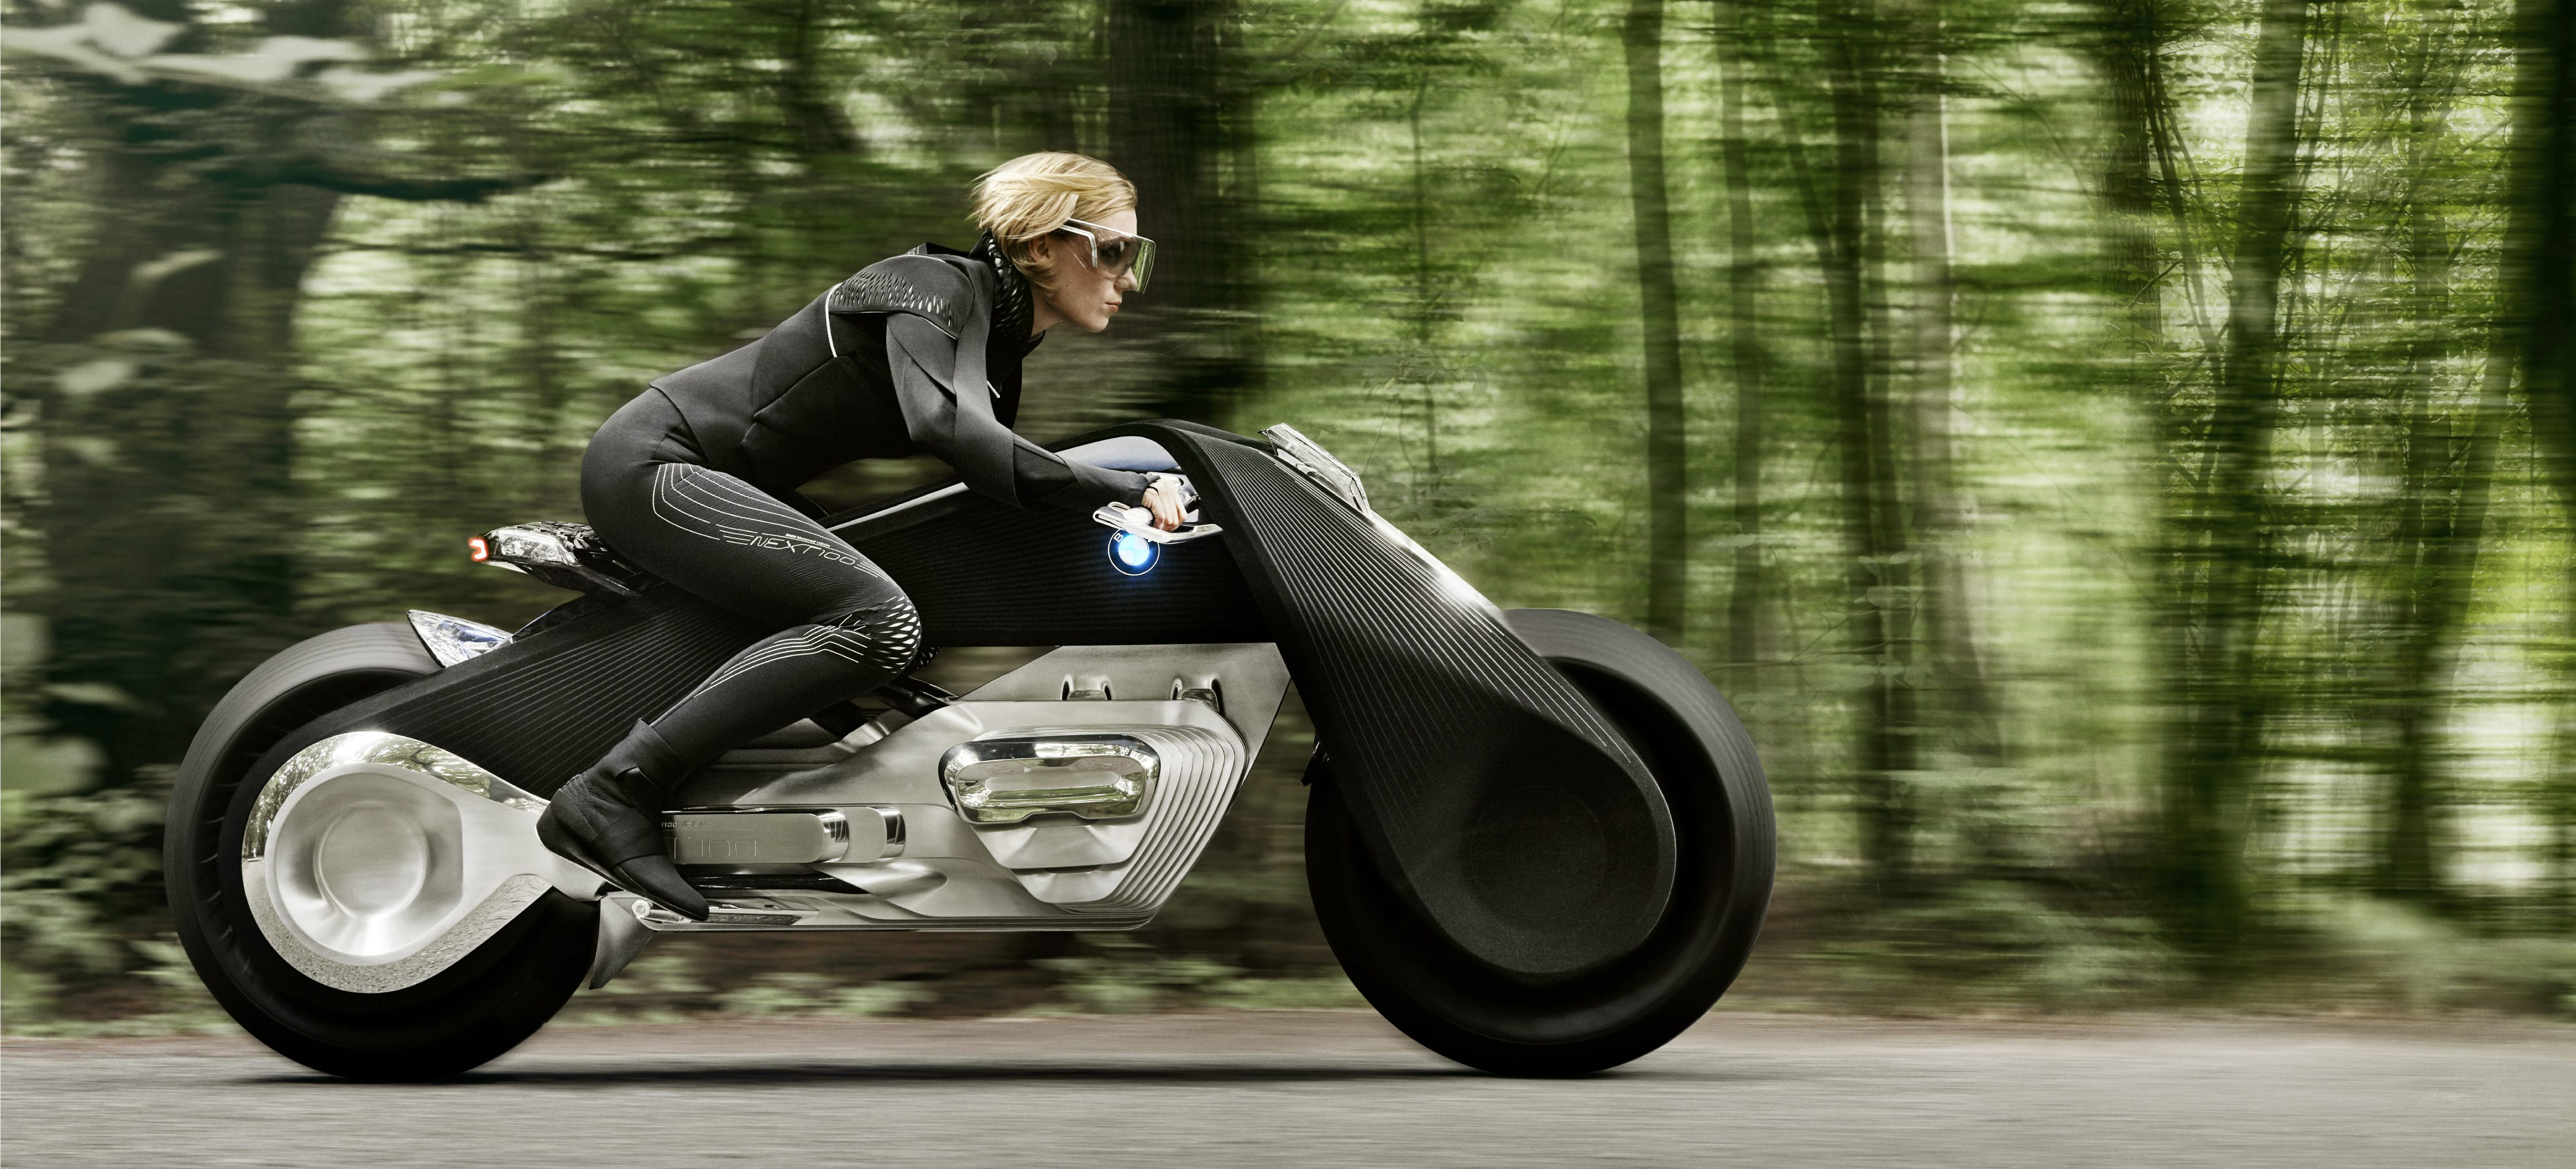 bmw unveils new self balancing electric motorcycle concept amid rumored talks with lit motors. Black Bedroom Furniture Sets. Home Design Ideas